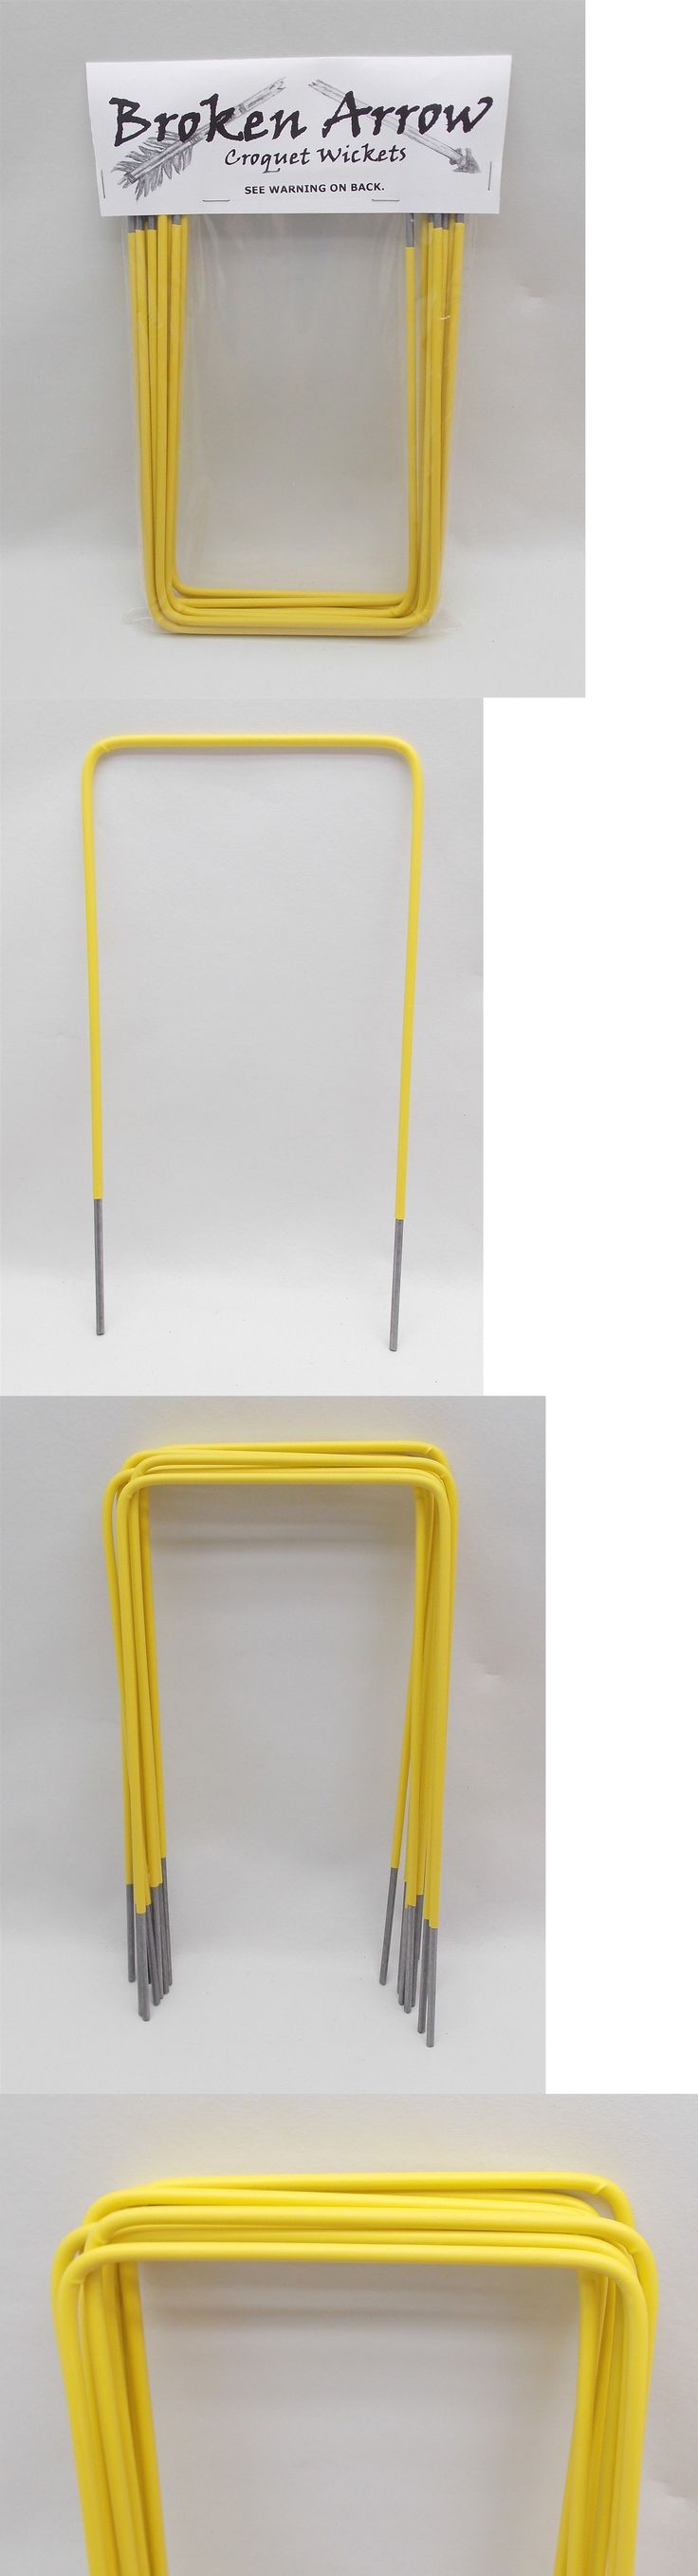 Croquet 117210: 1 Set Of Croquet Wickets Hoops Heavy 9 Ga. Steel Yellow Plastic Coated 5 Square -> BUY IT NOW ONLY: $34.99 on eBay!